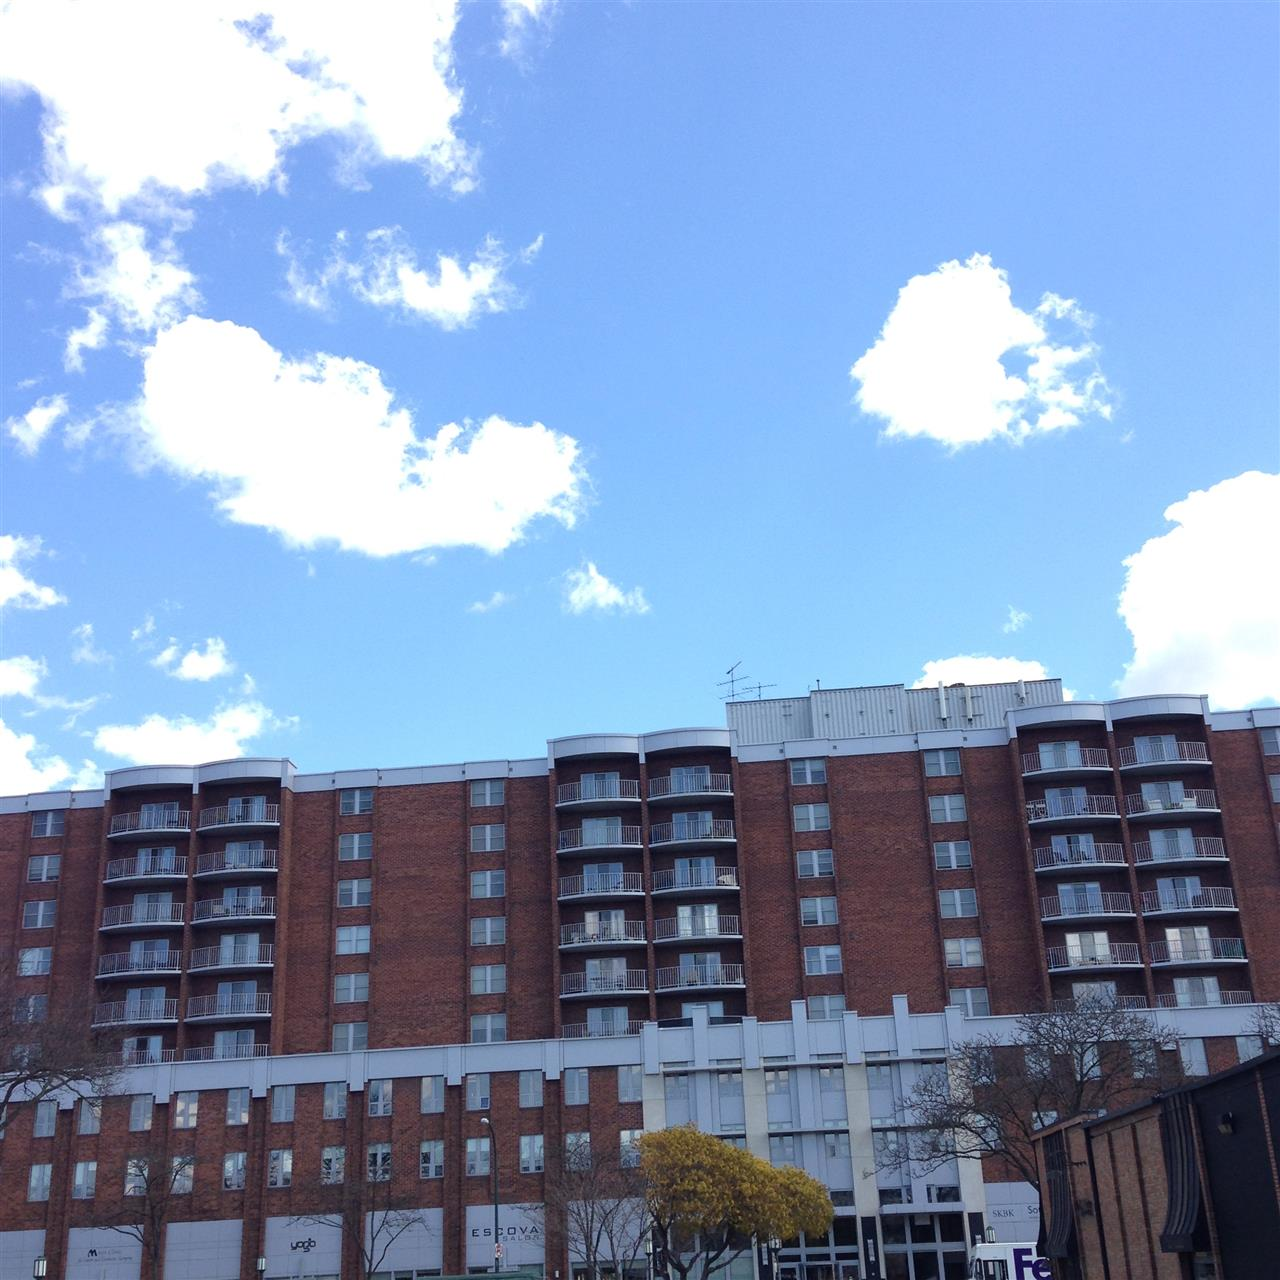 High-rise living in Birmingham ~ Birmingham, Michigan #LeadingRElocal #Birmingham #Michigan